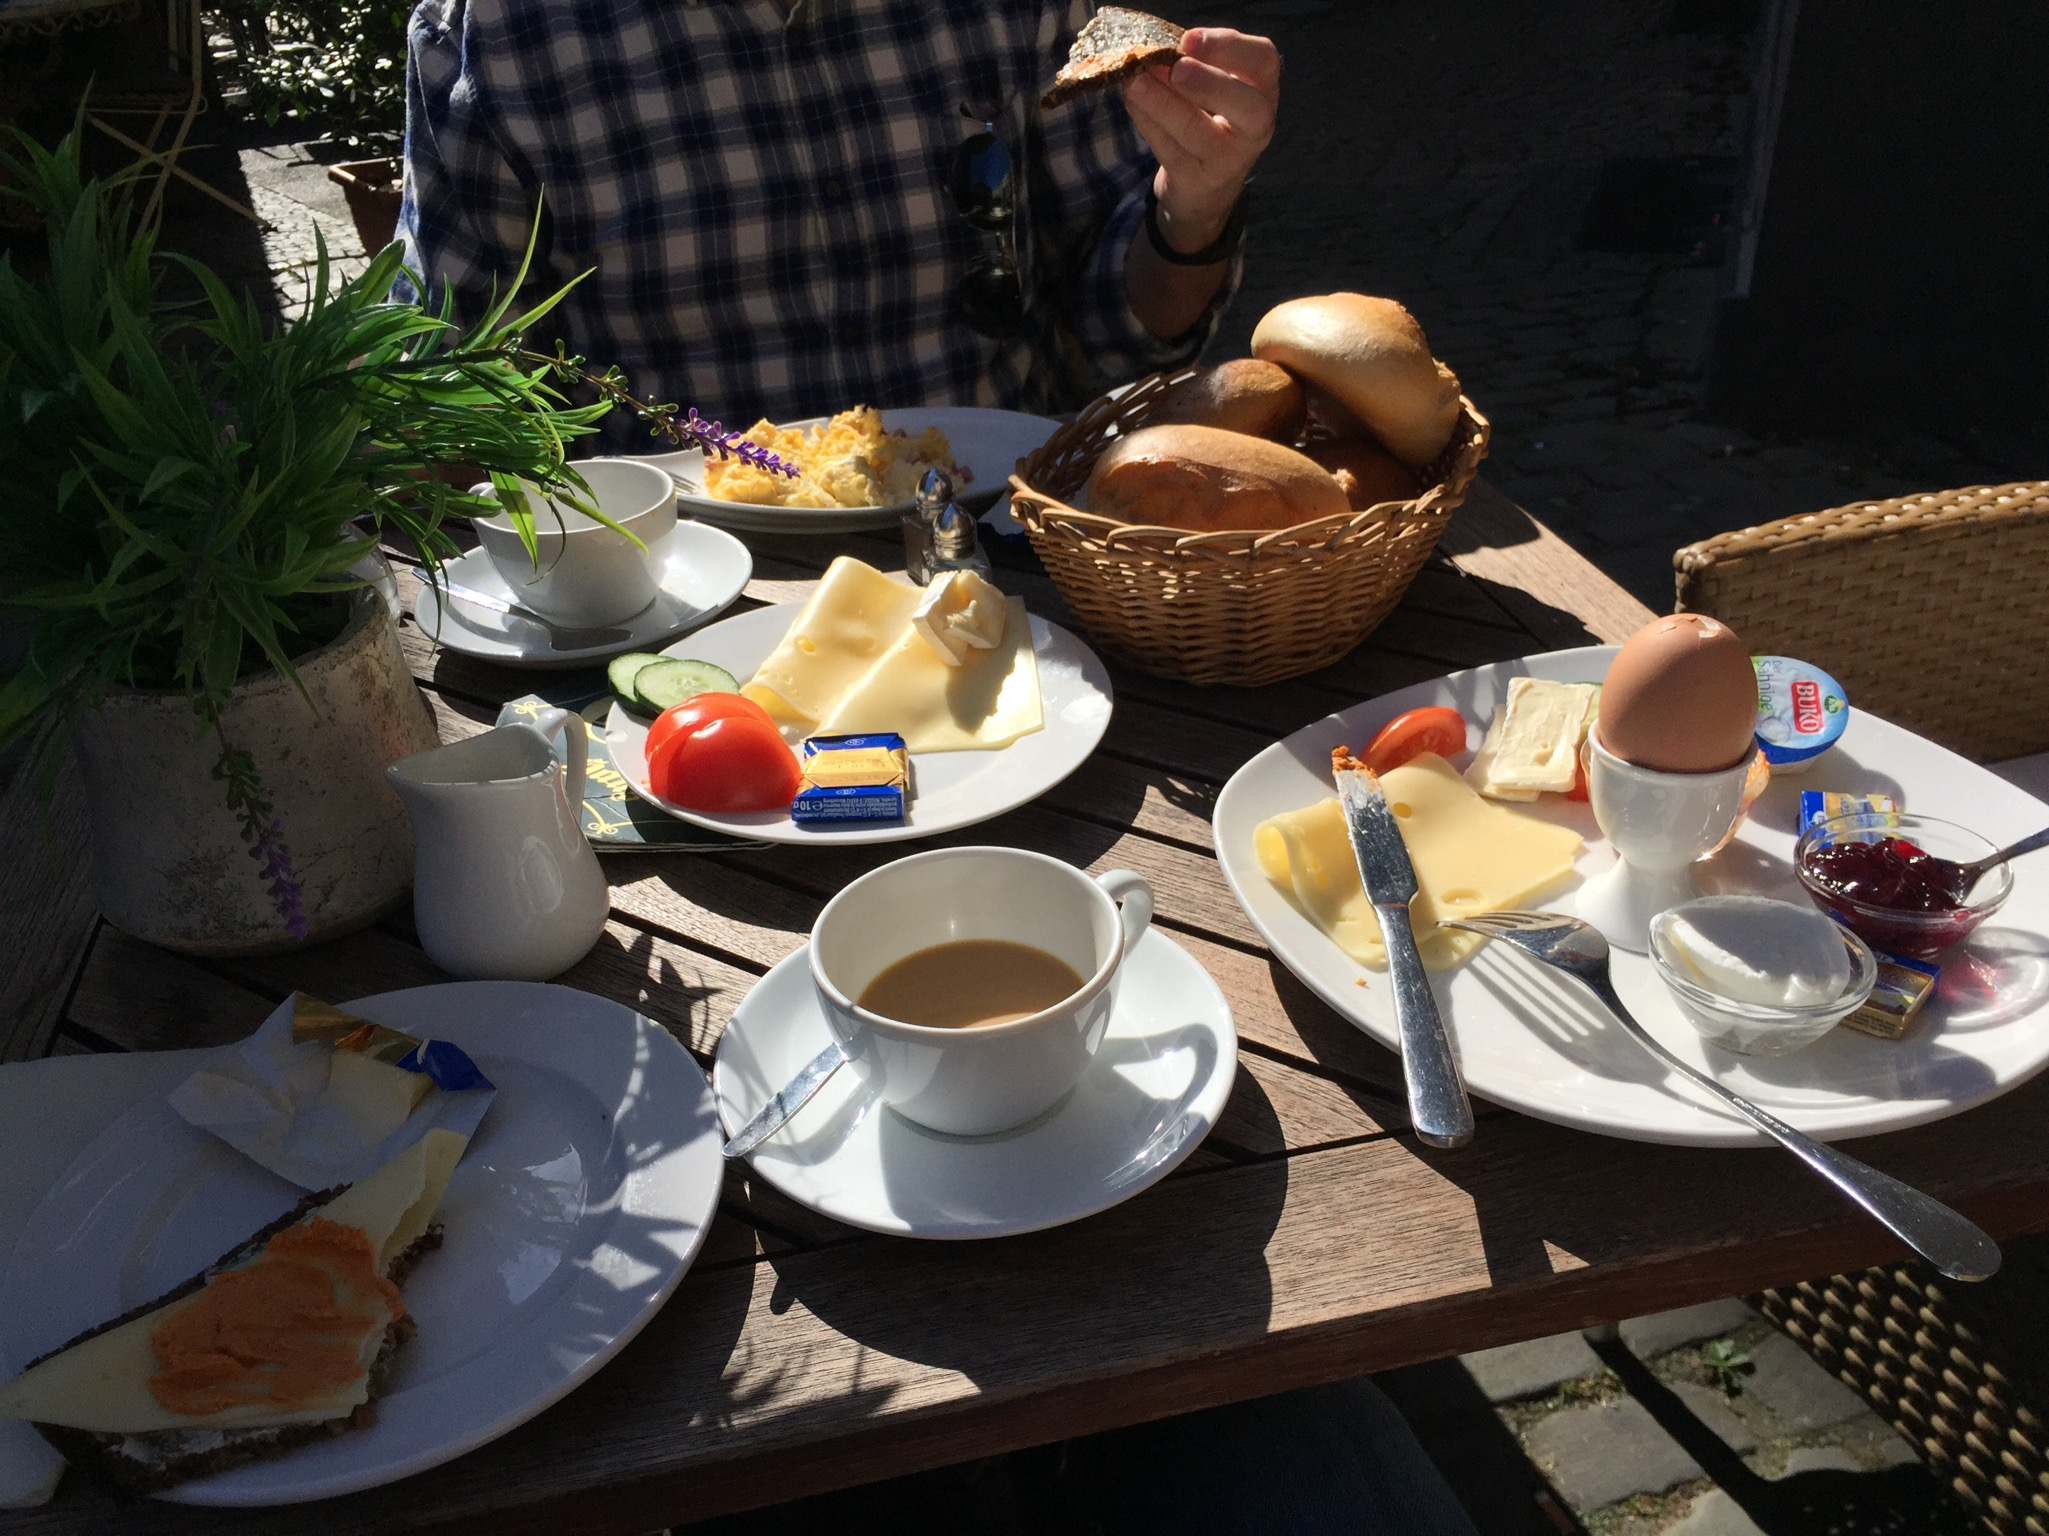 Aachener Cafe is one of our favorites for breakfast and a great cup of coffee.